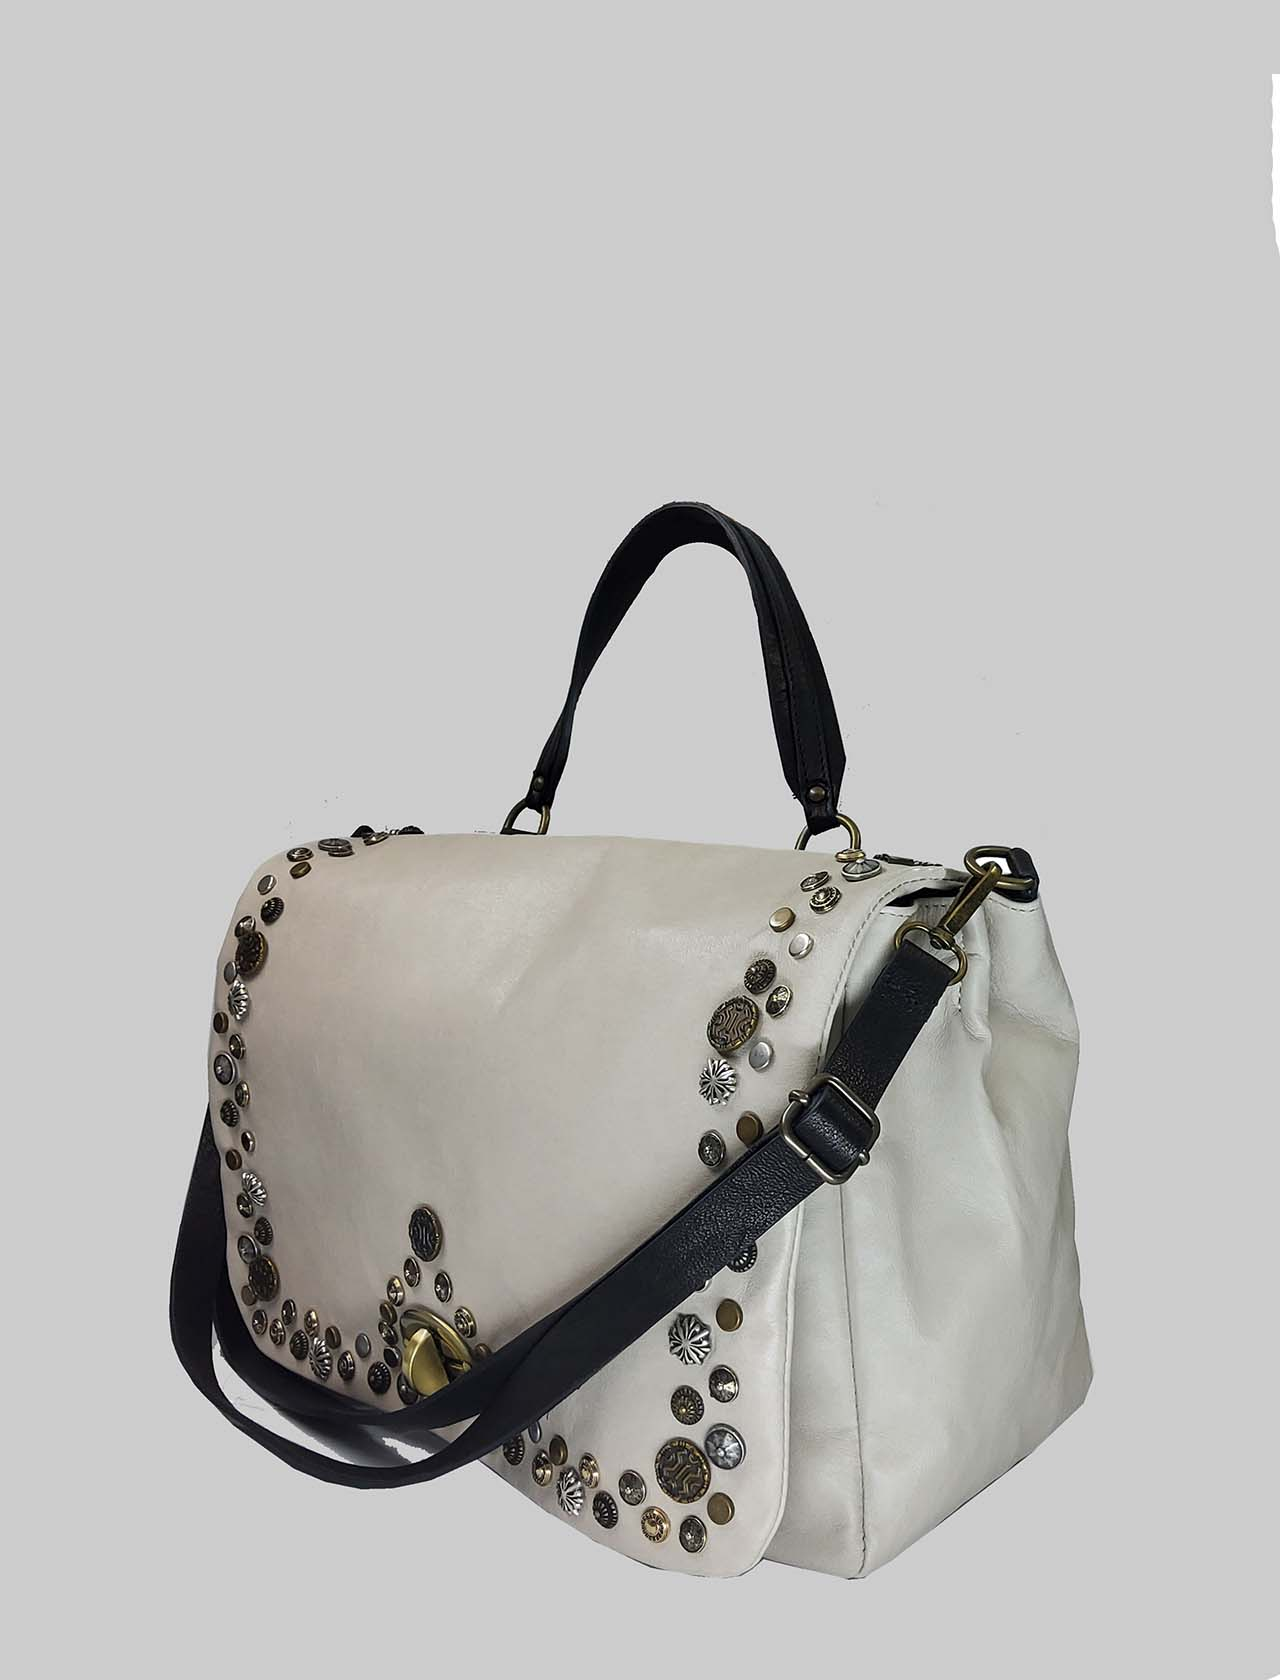 Woman Shoulder Bag in Cream Leather with Studs and Adjustable Leather Shoulder Strap Spatarella | Bags and backpacks | FIONA016